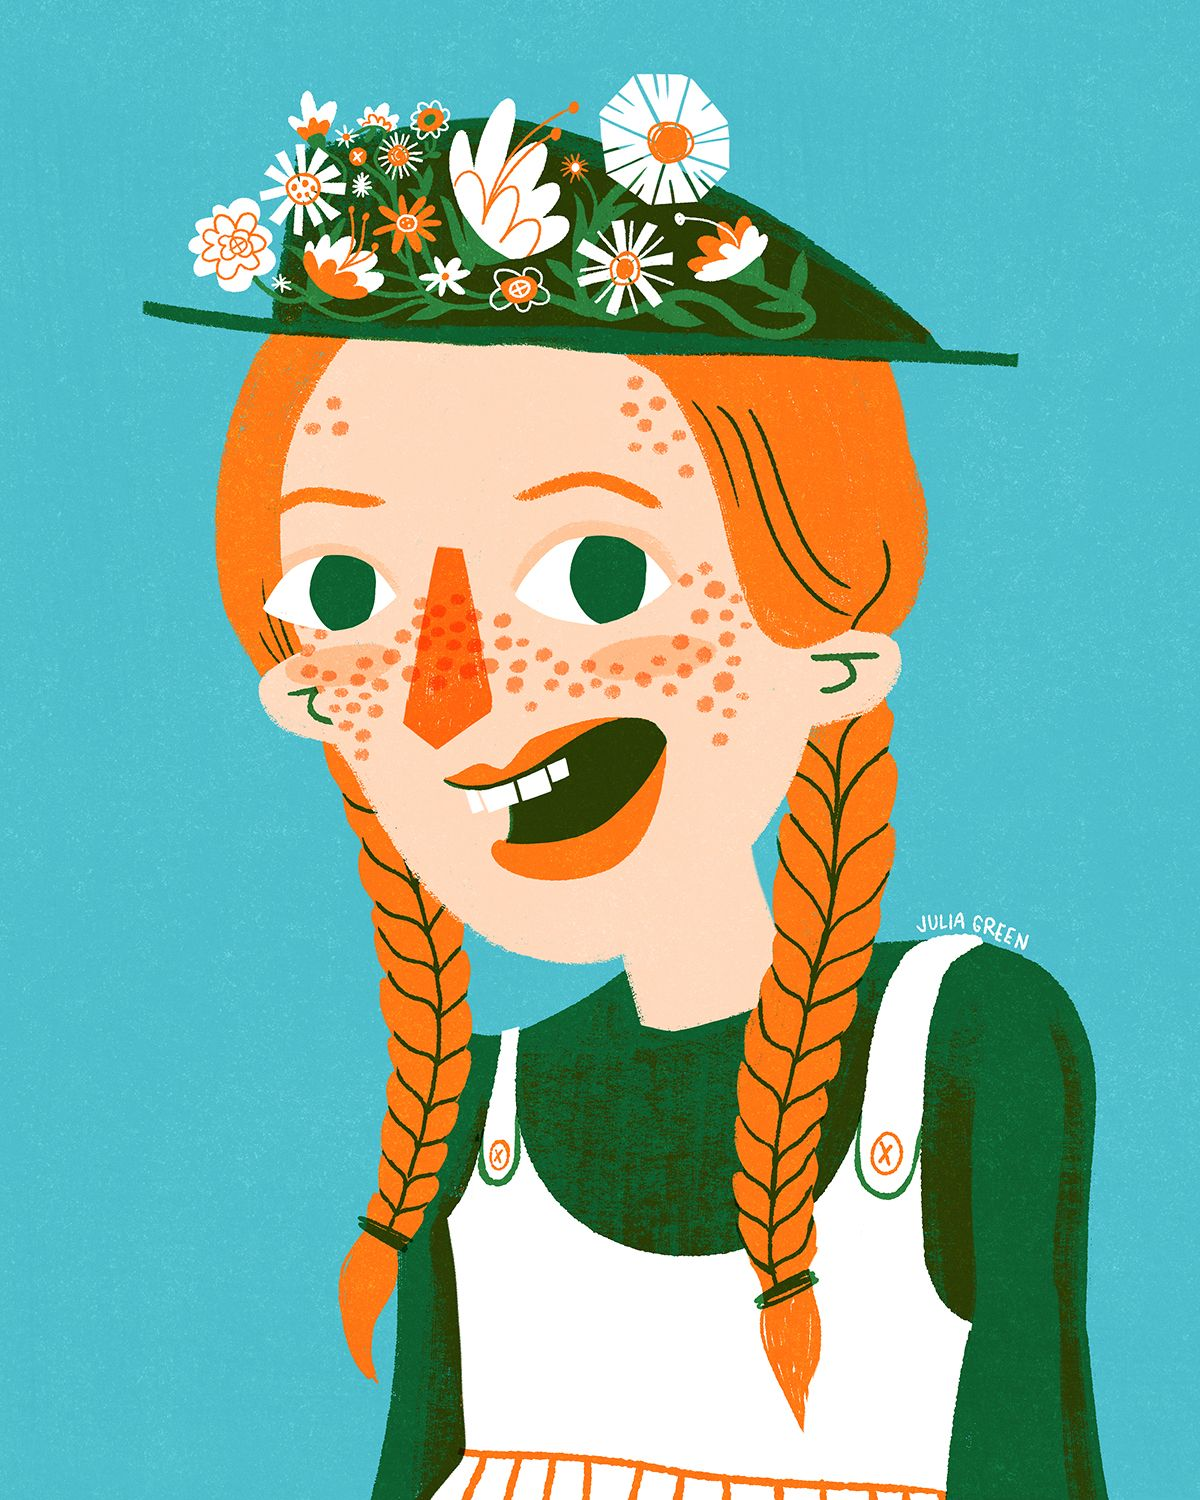 Anne Of Green Gables Anne With An E Illustration By Julia Green